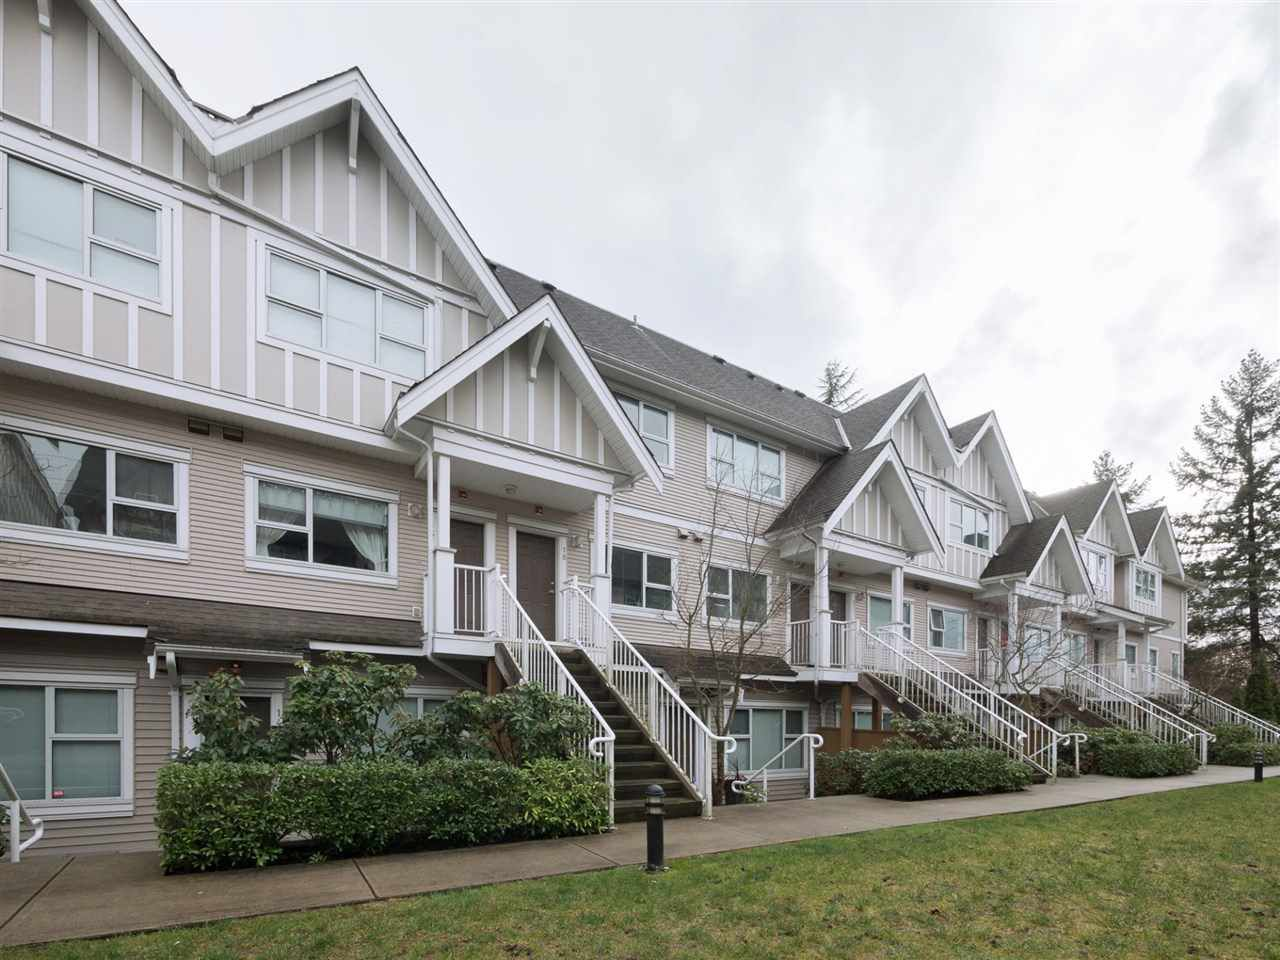 "Main Photo: 18 730 FARROW Street in Coquitlam: Coquitlam West Townhouse for sale in ""FARROW RIDGE"" : MLS®# R2250596"